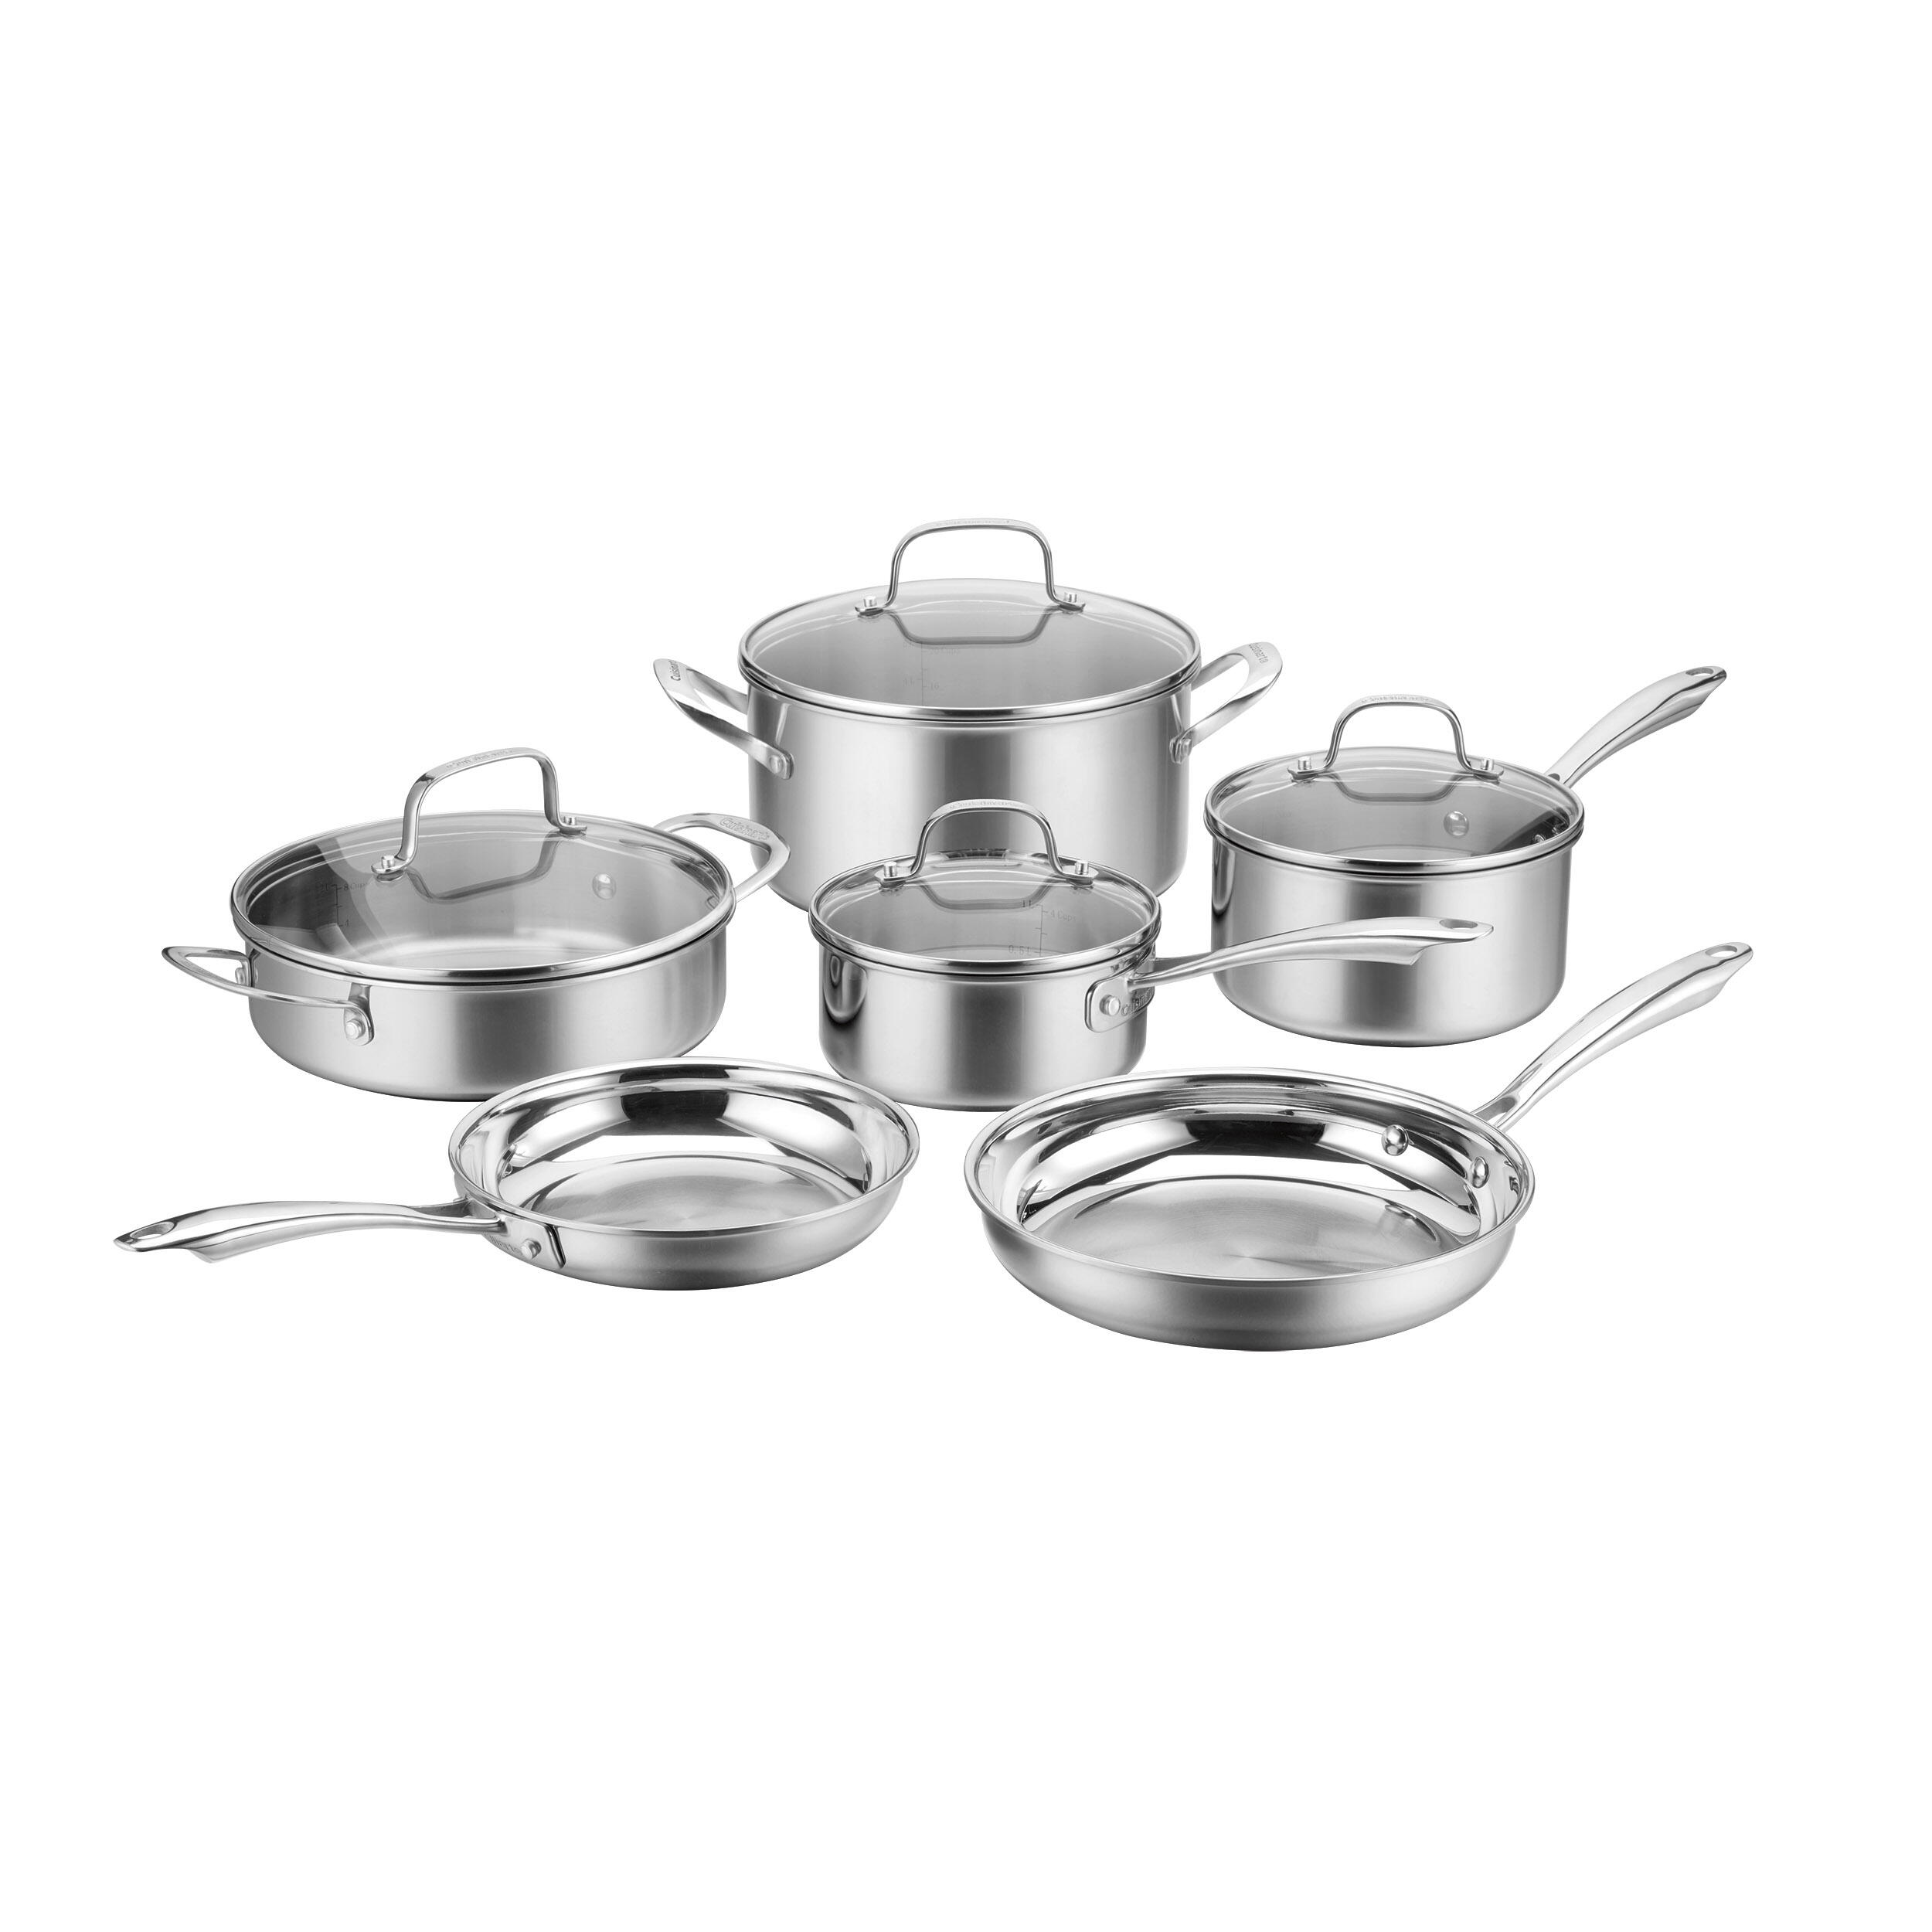 Cuisinart MultiClad Triply 10-Piece Stainless Steel Cookware Set